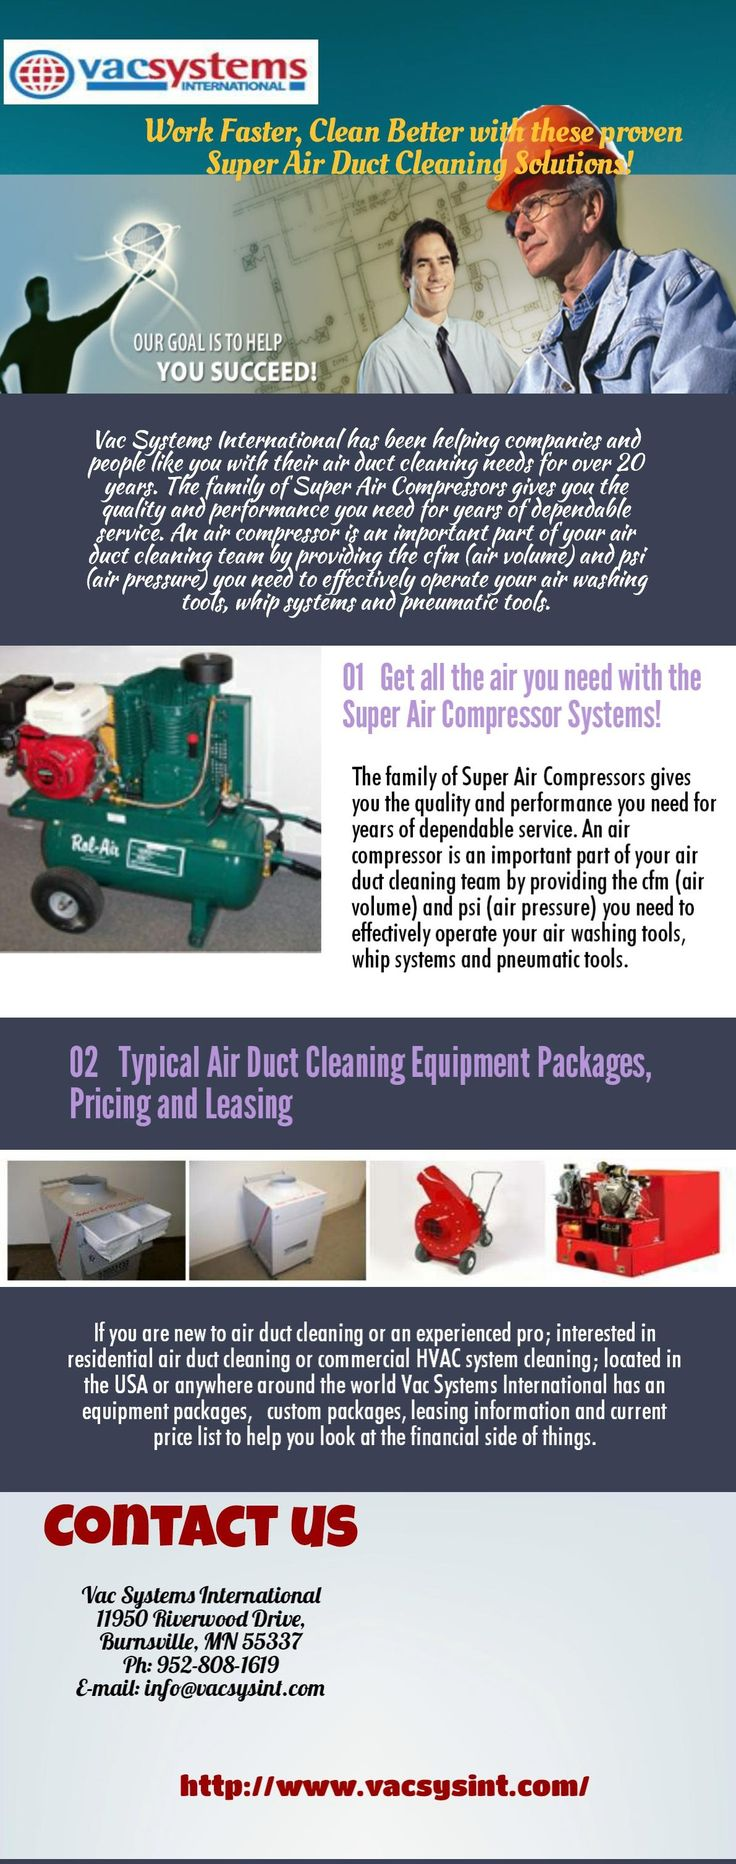 """If you are new to Ductwork Cleaning Tools , then not to worry. Vac Systems International offers these """"field proven"""" duct accessing tools, products and accessories to help you maximize your productivity. Choose from service panels, cap plugs, isolation foam cubes, zone bags, duct mask, magnetic sheets, vari-bit, 2"""" to 12"""" hole cutter, electric shears and more.  All of these items are used every day by residential and commercial air duct cleaning contractors."""